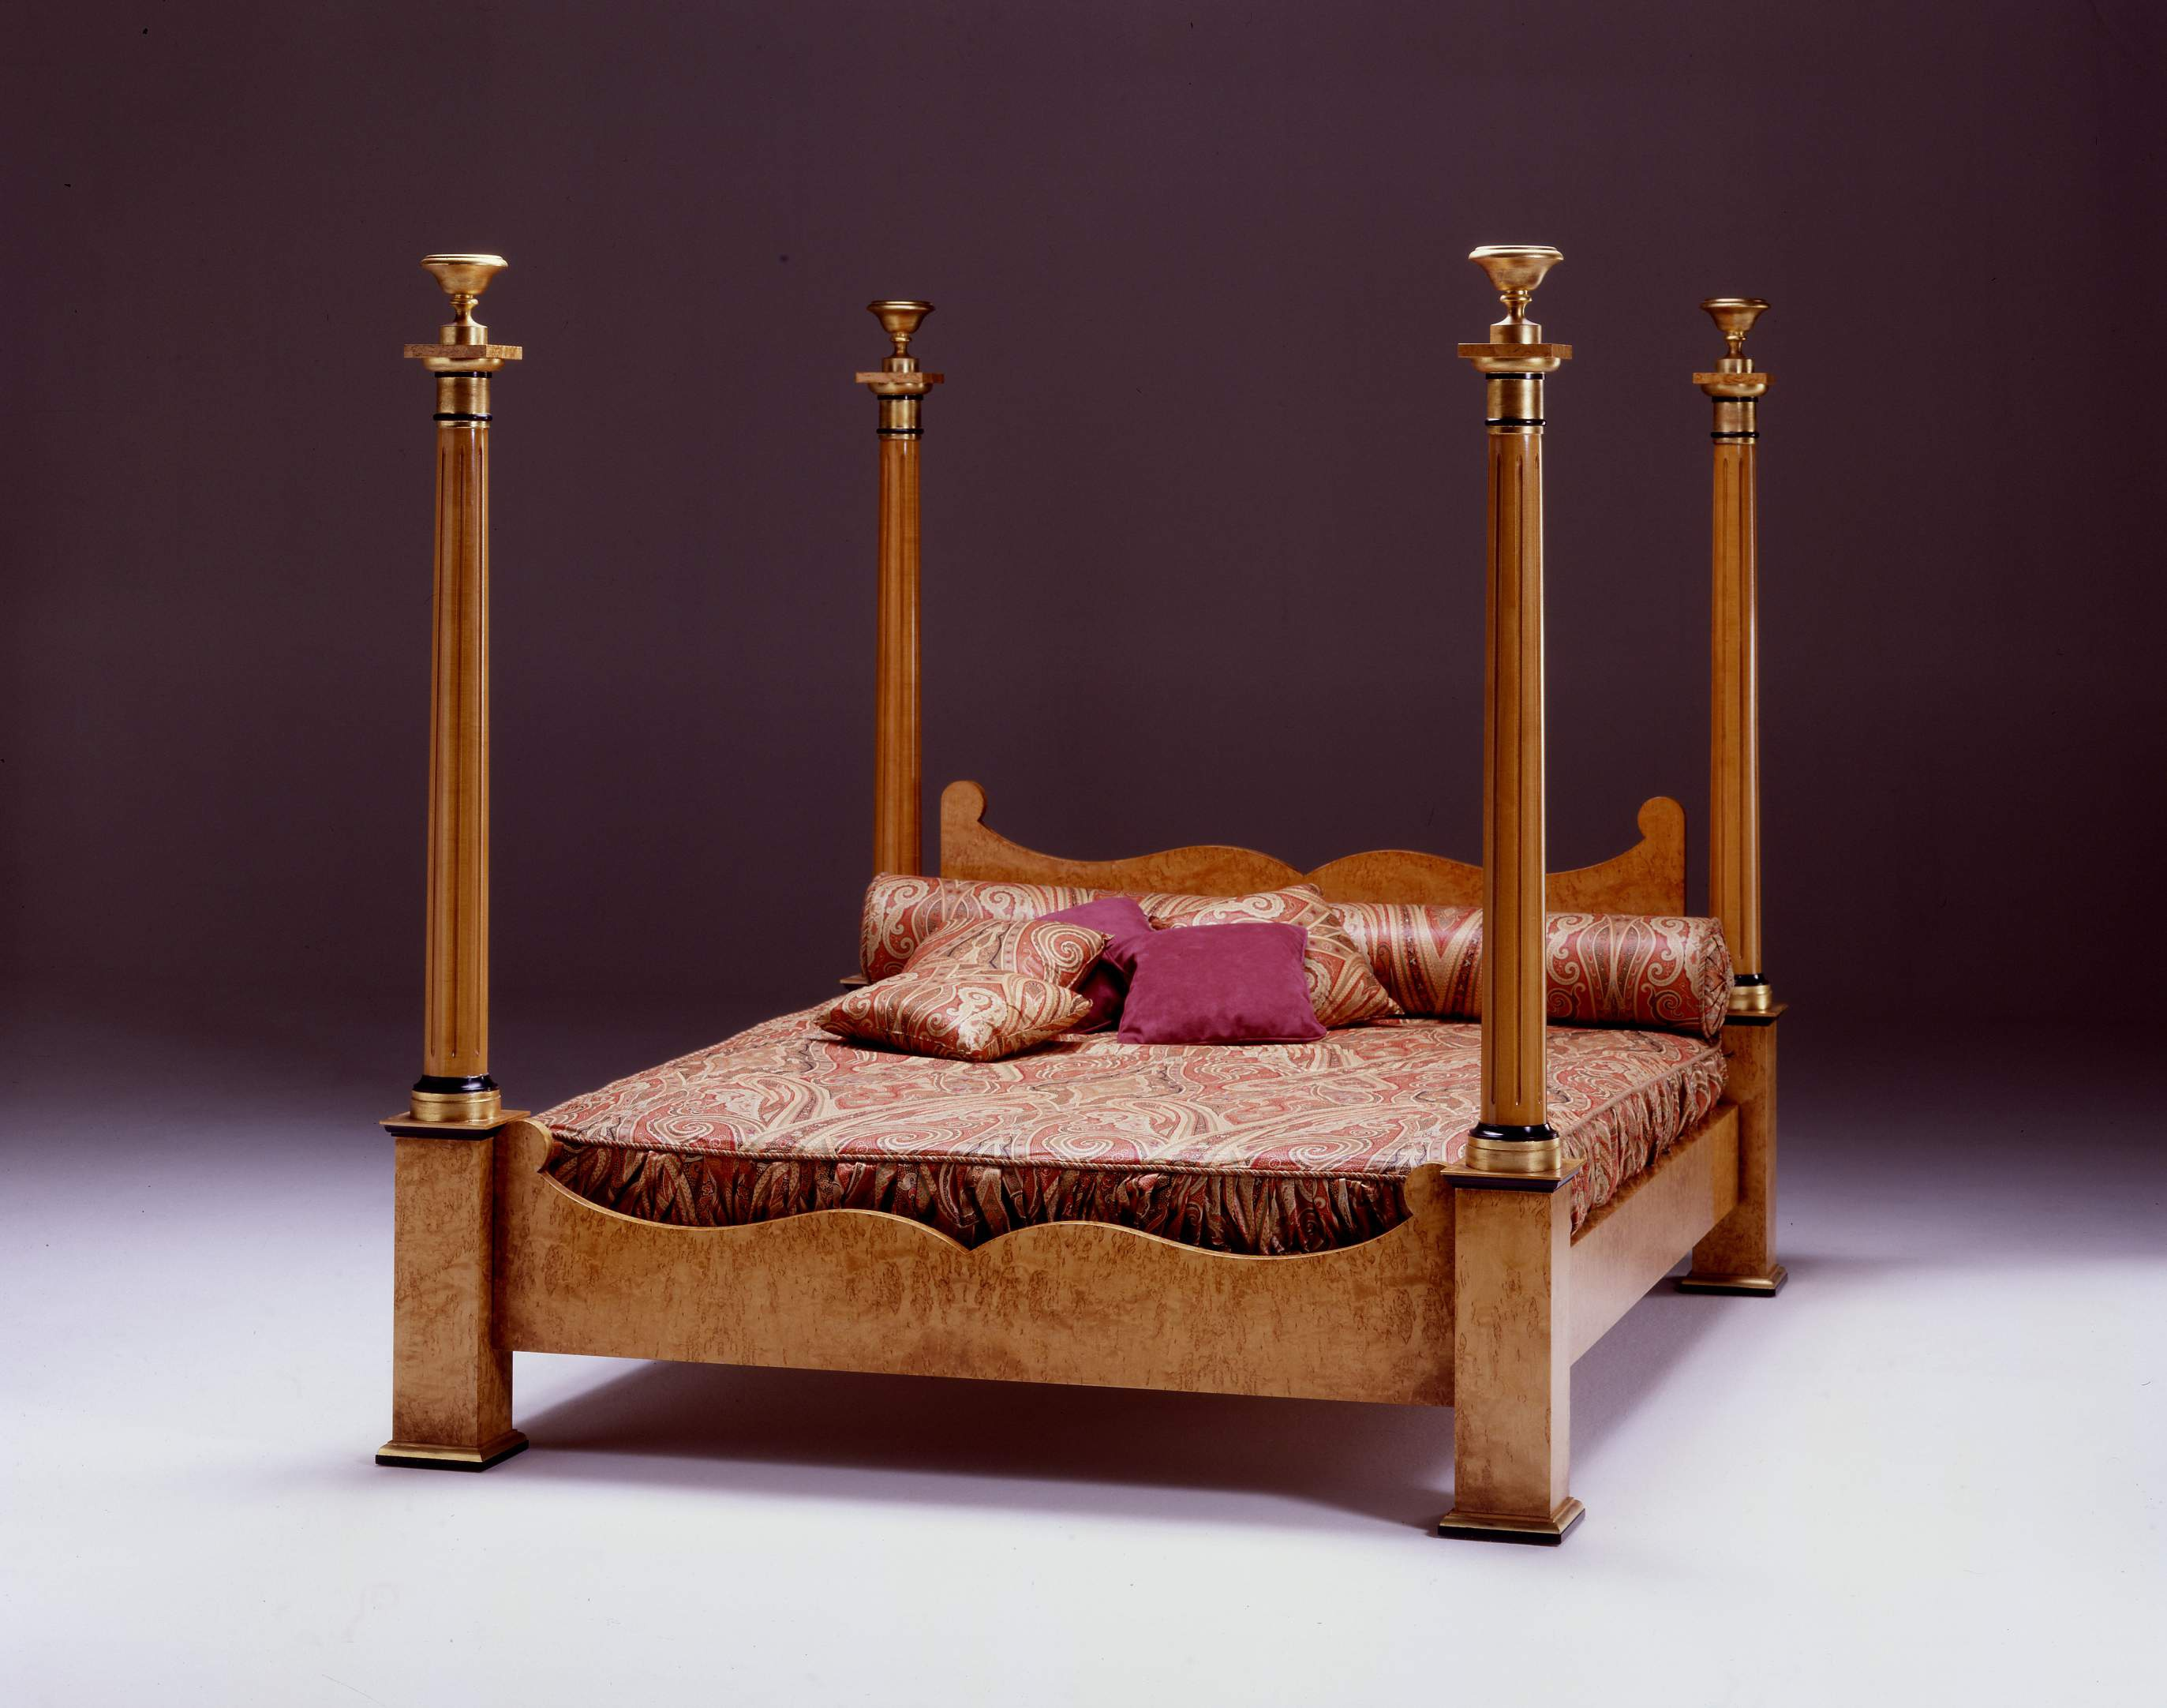 A Four Poster Bed Impero Colombo Stile Luxury Furniture MR